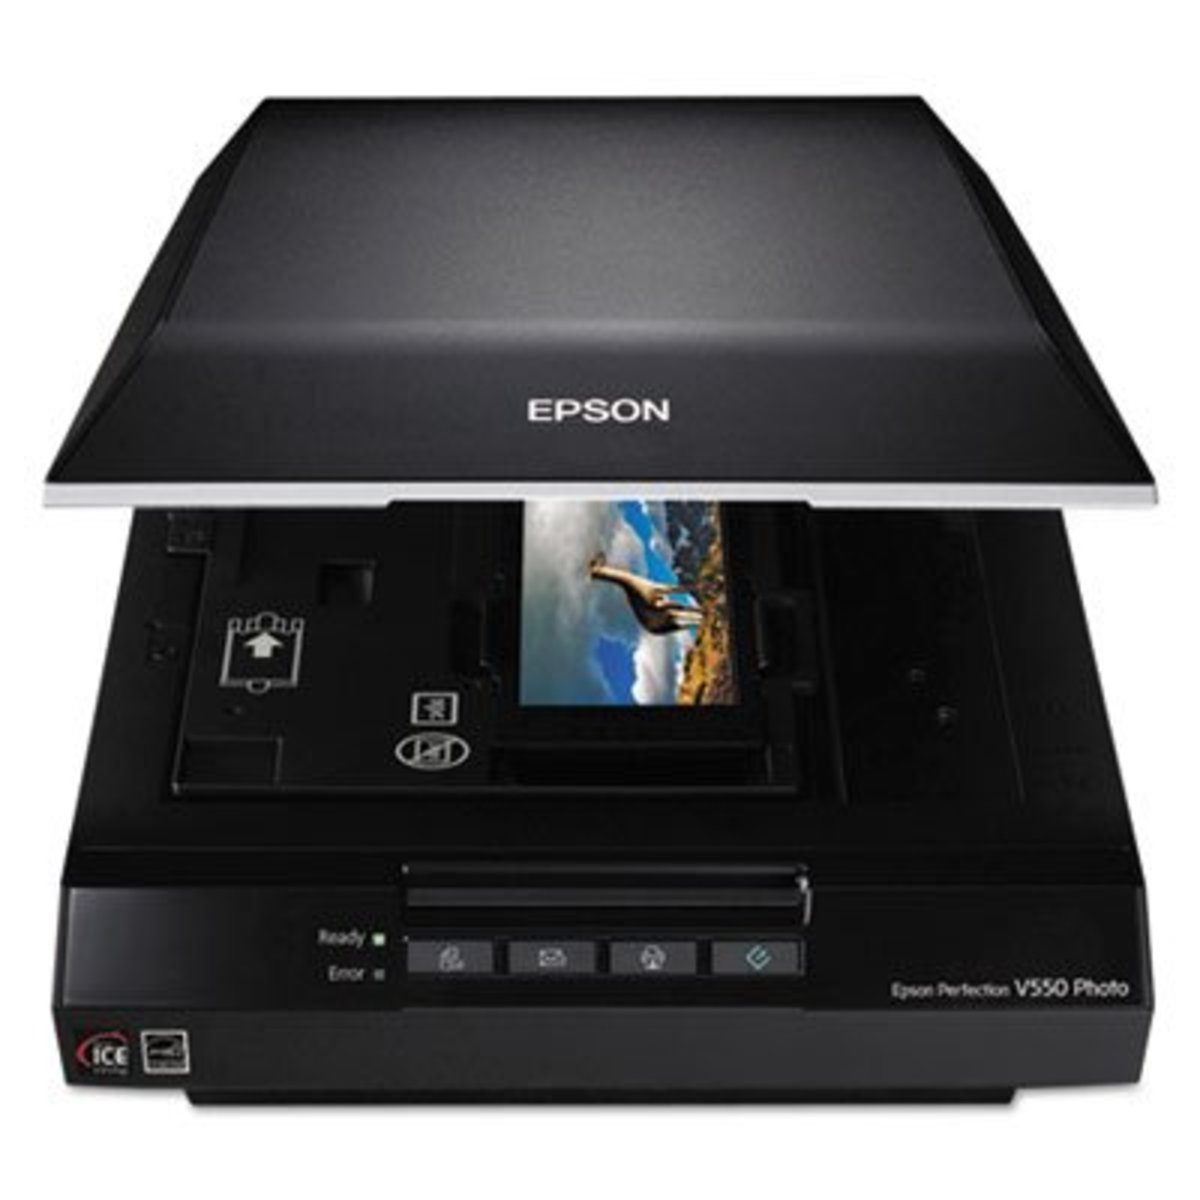 Epson Perfection Photo Color Scanner (V550)